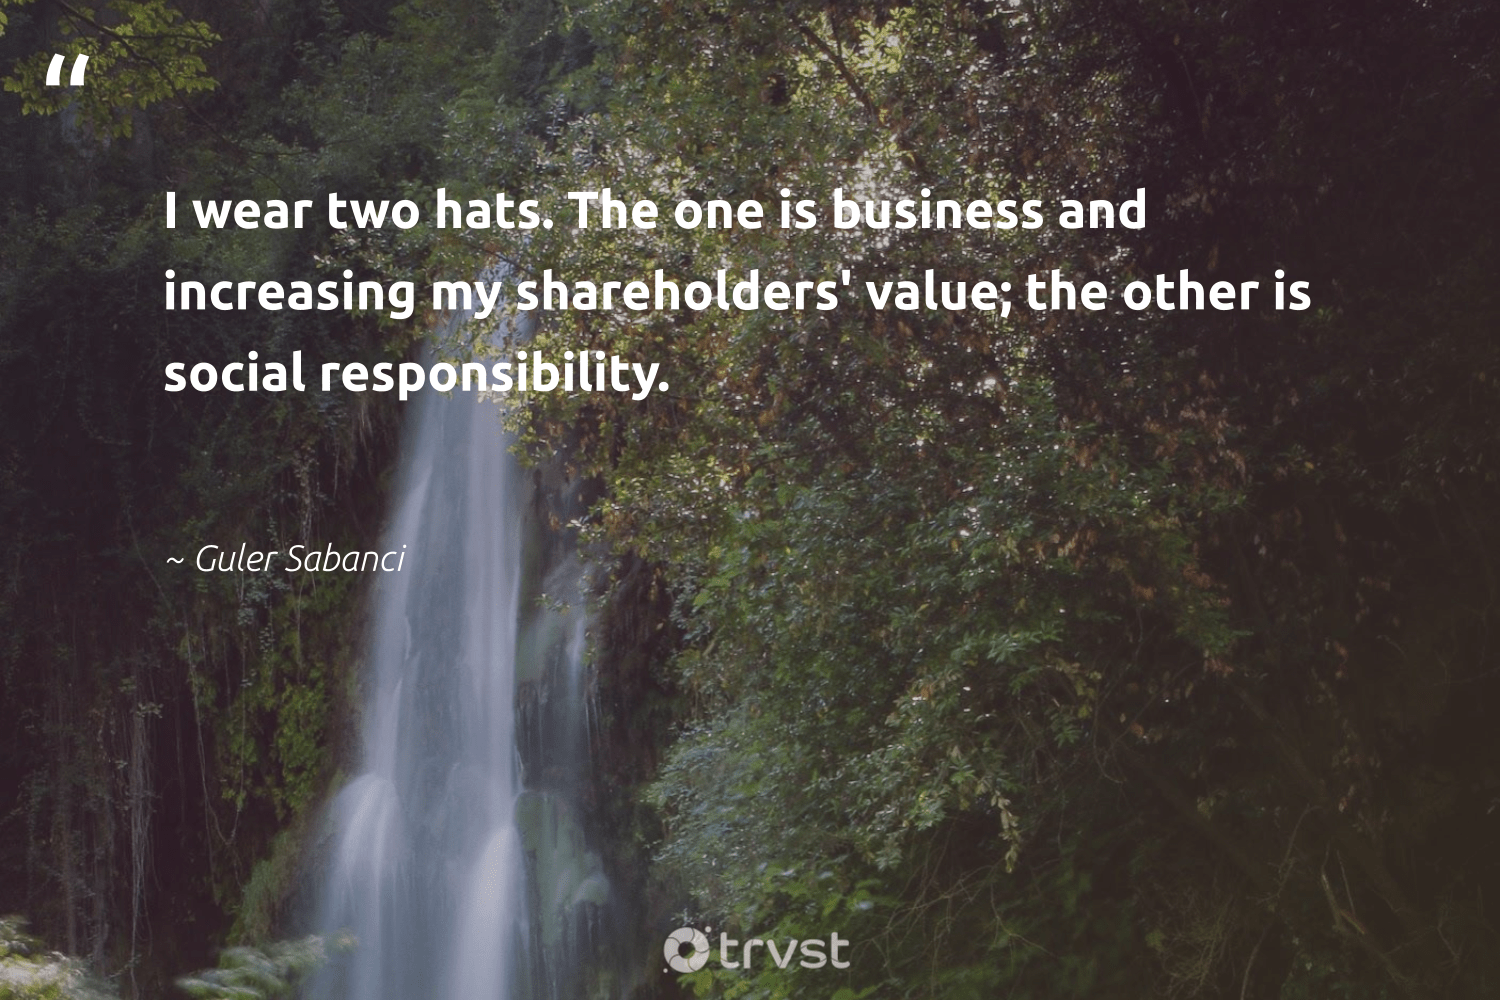 """""""I wear two hats. The one is business and increasing my shareholders' value; the other is social responsibility.""""  - Guler Sabanci #trvst #quotes #sustainable #beinspired #sharedresponsibility #socialimpact #dogood #changetheworld #betterplanet #bethechange #ethicalbusiness #dotherightthing"""